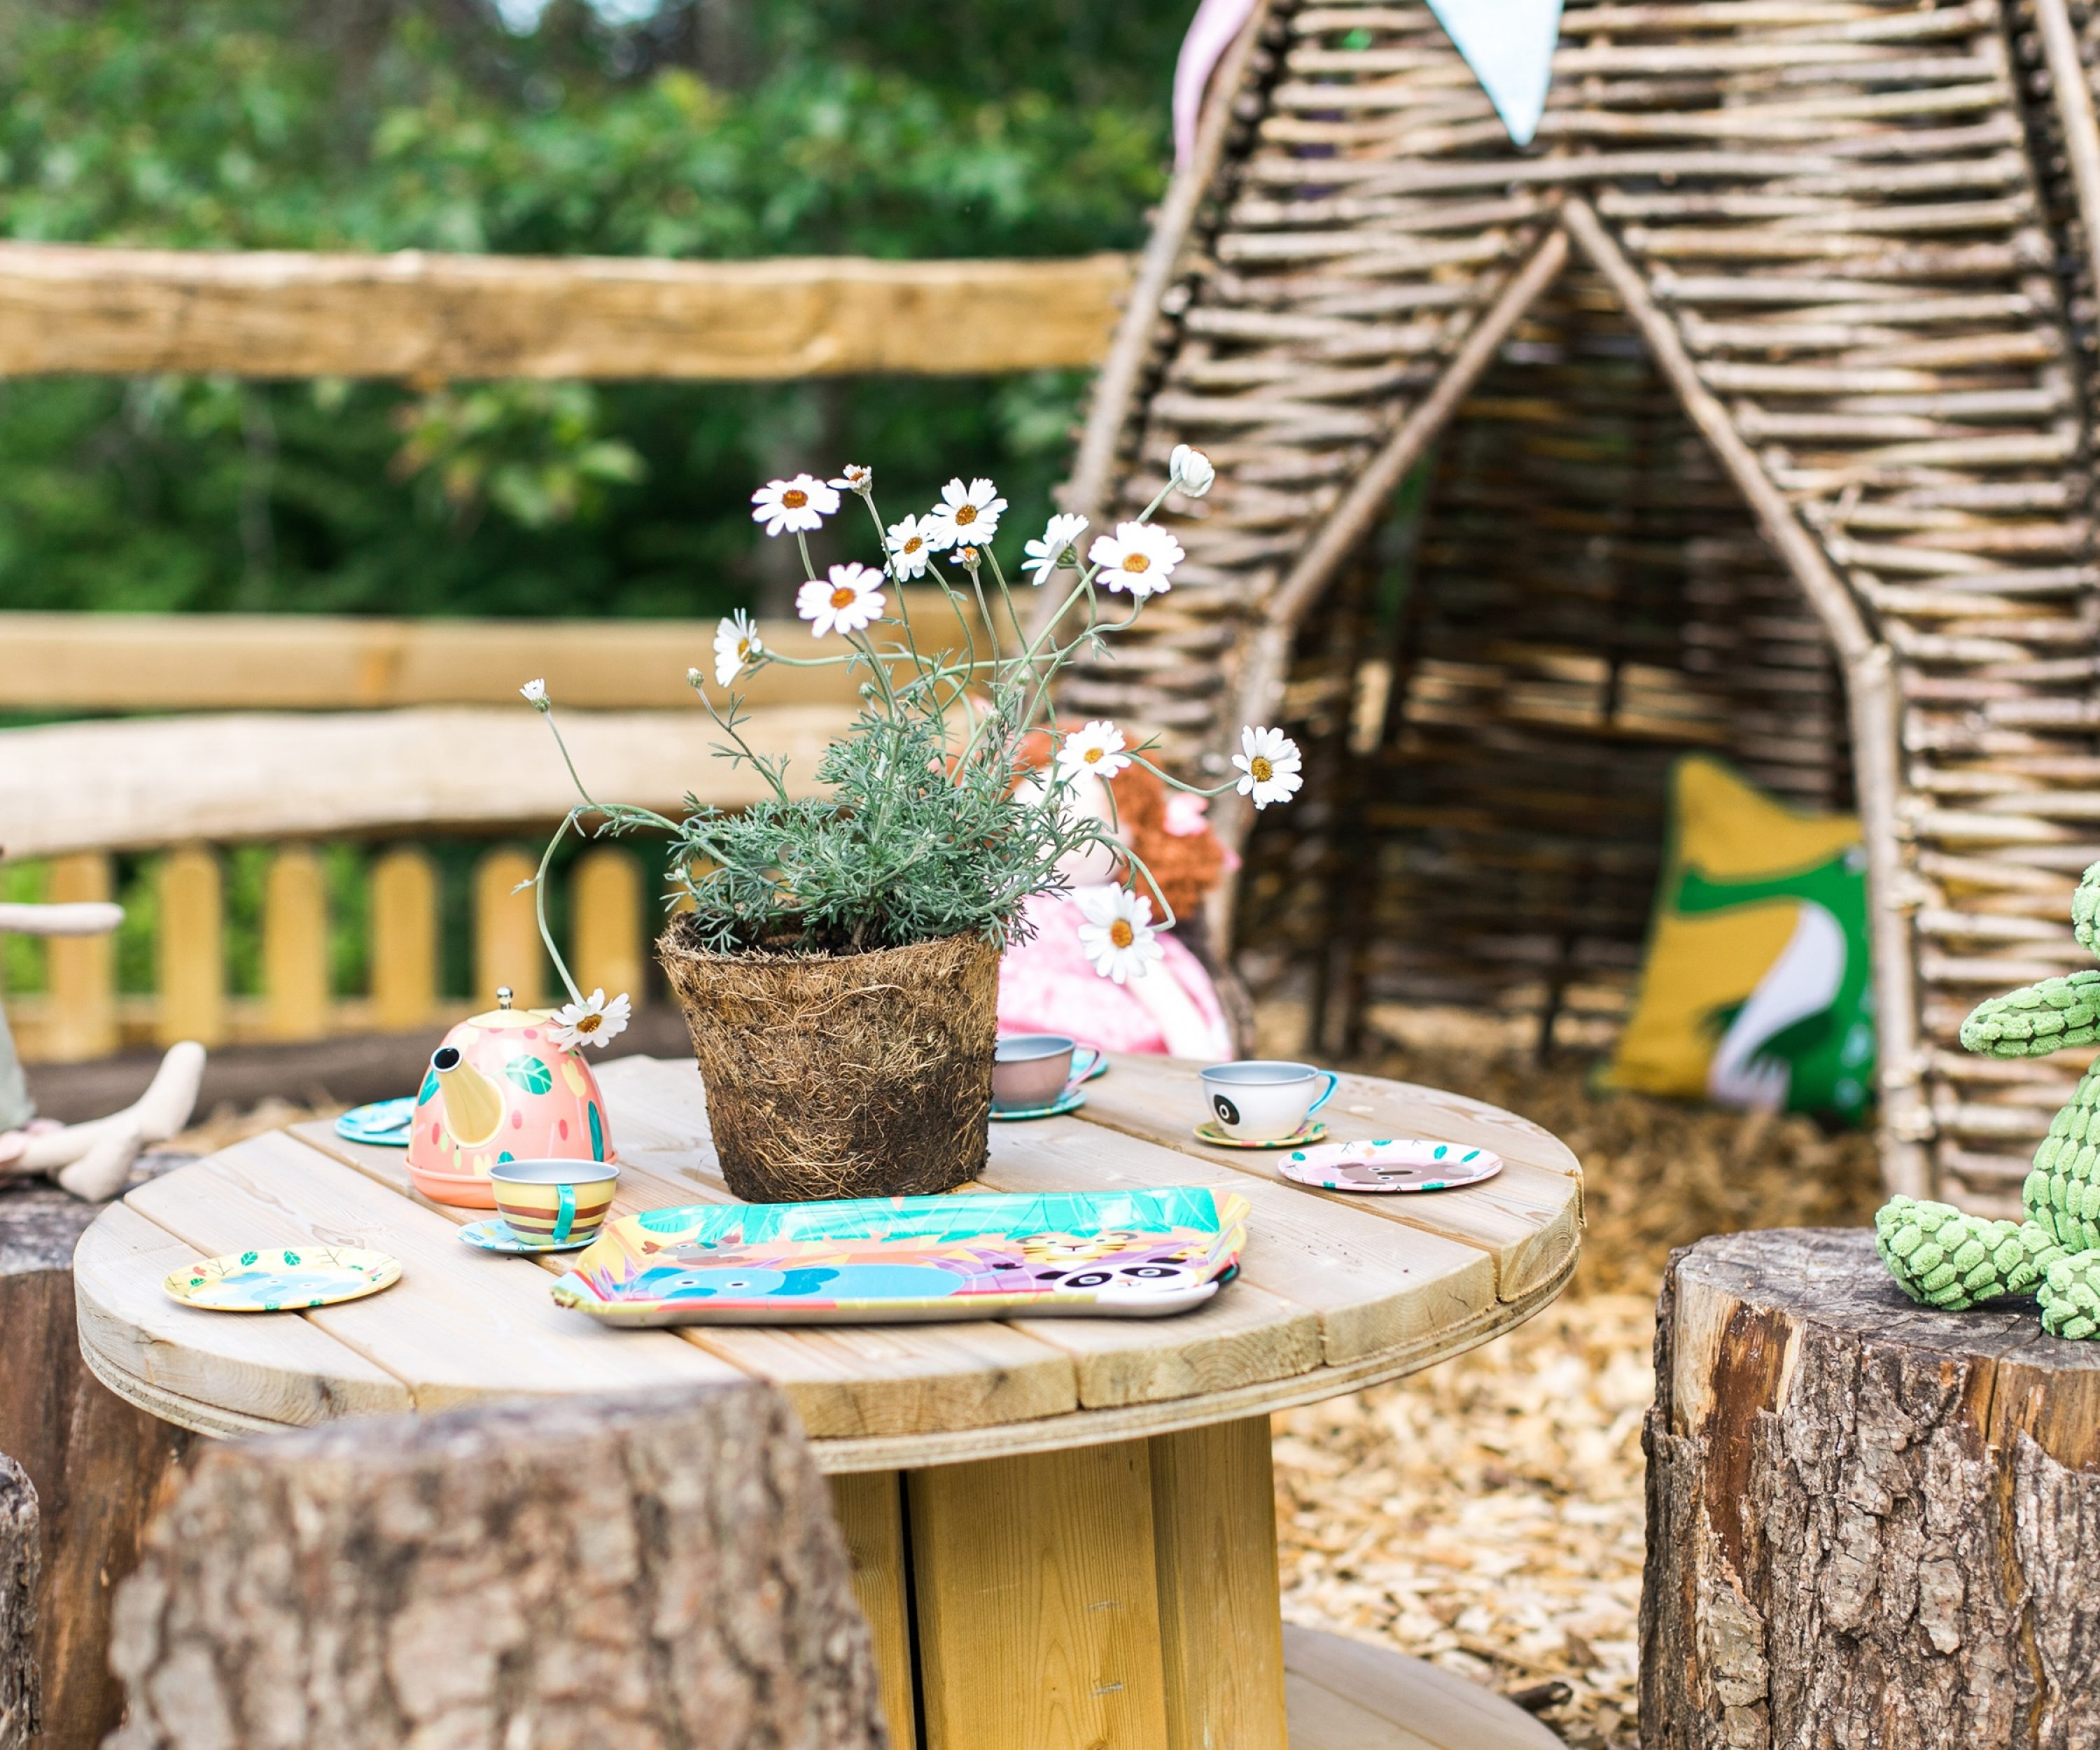 Handmade wooden miniature seating area and children's toys.